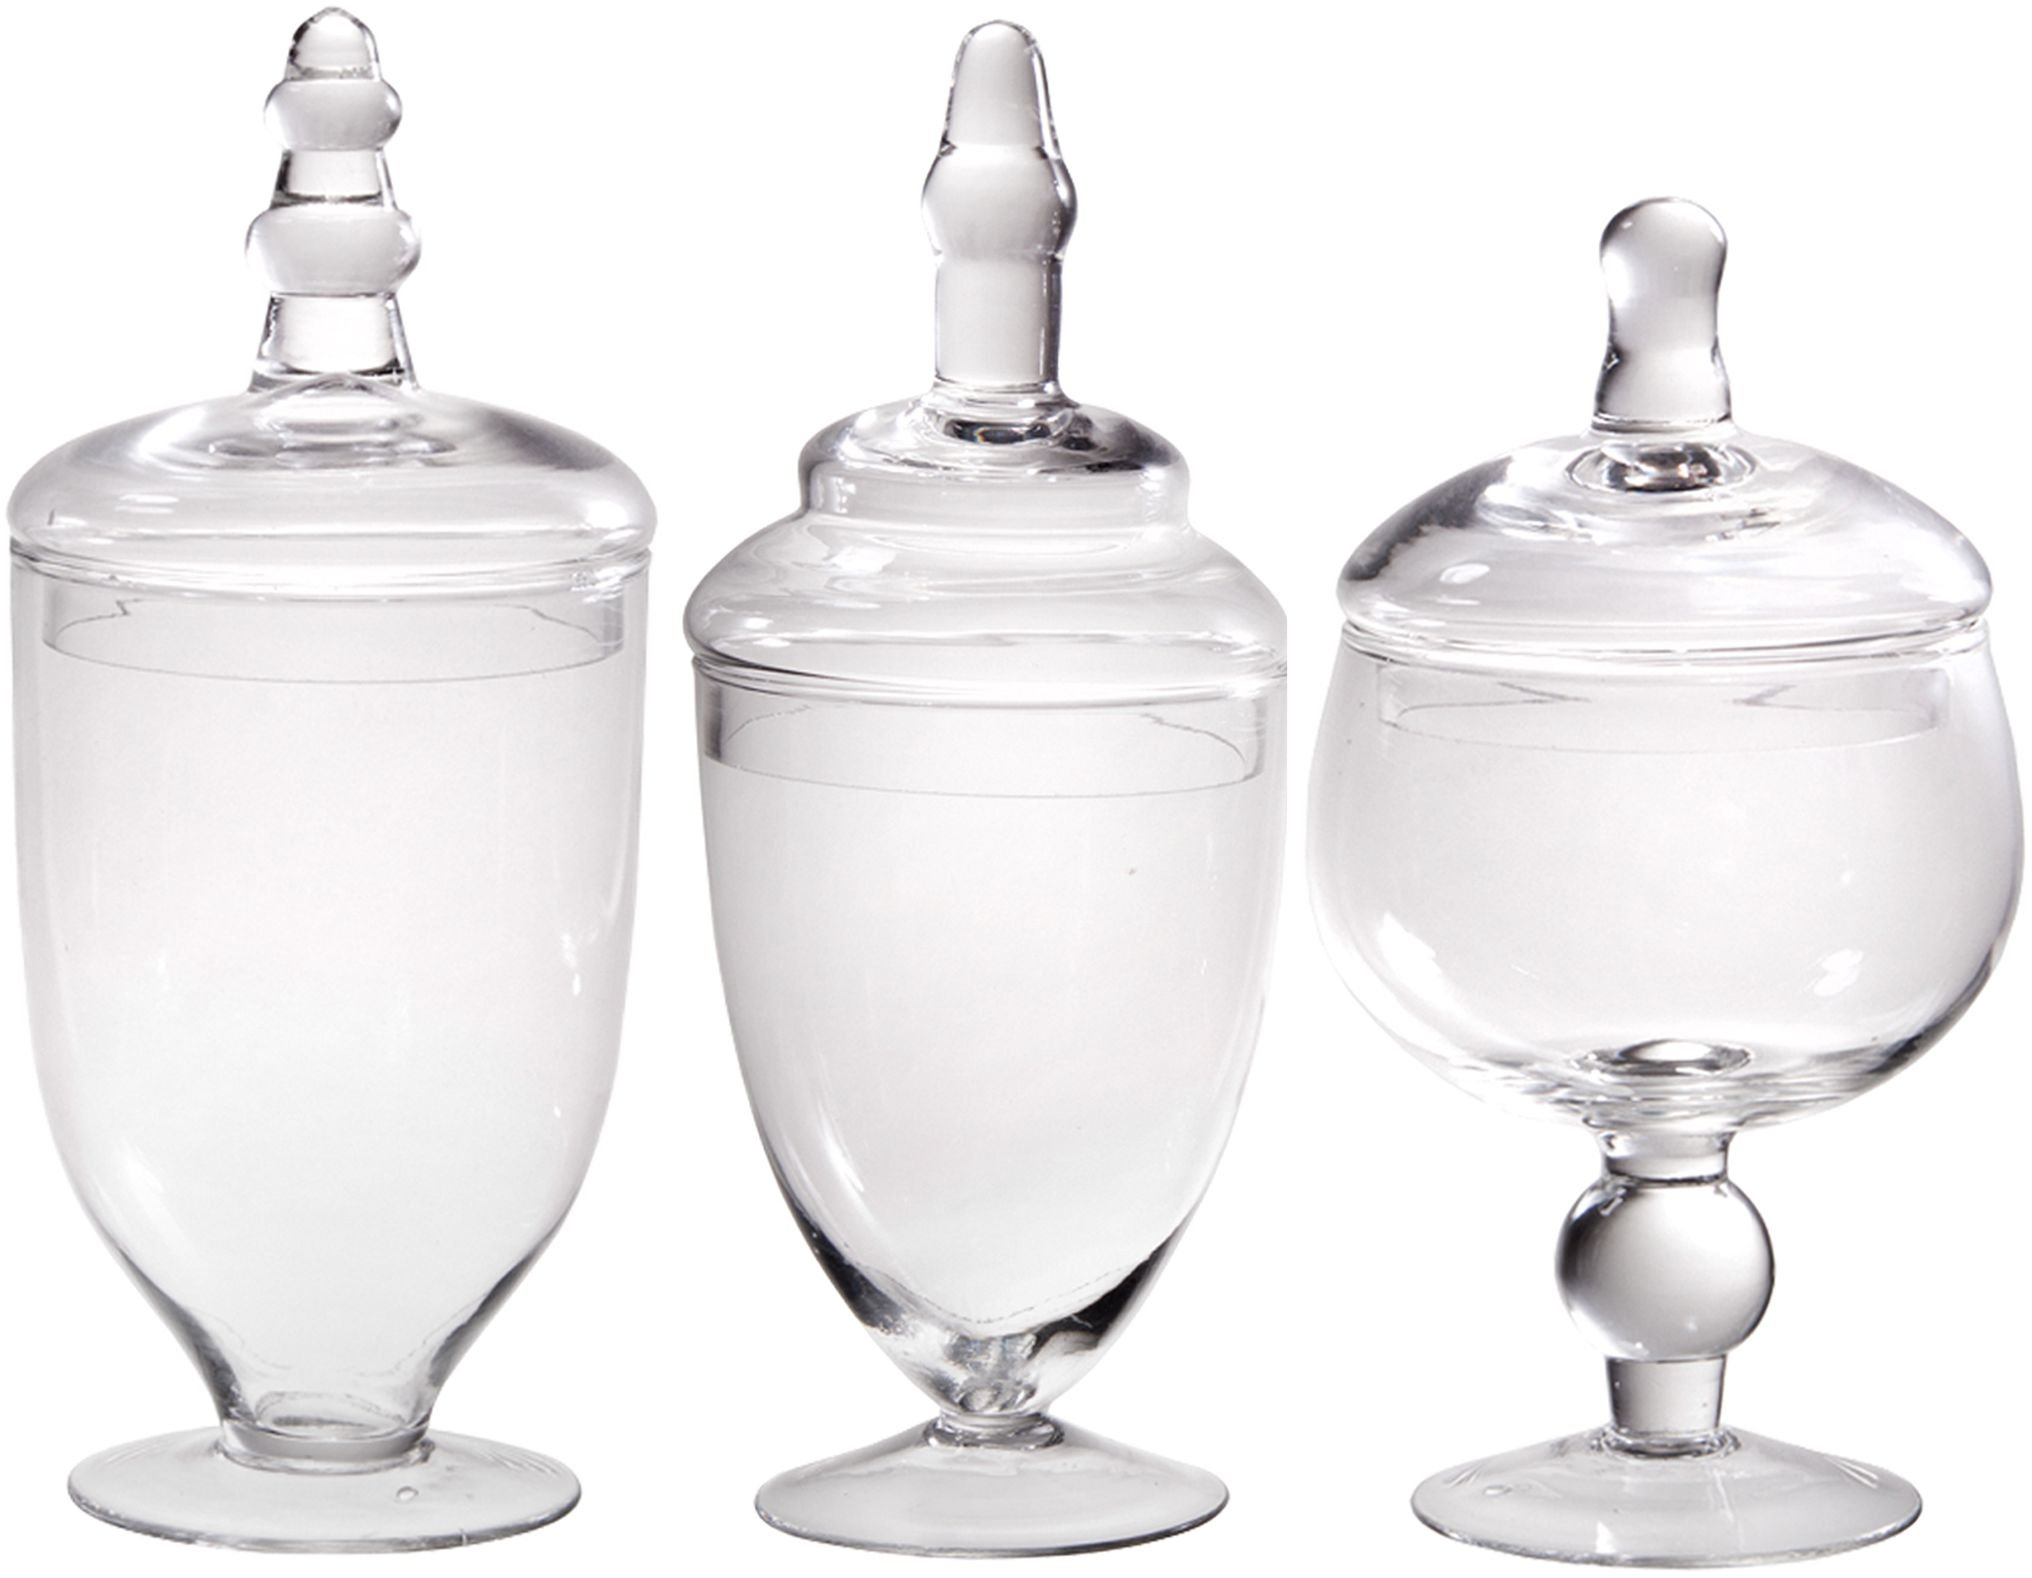 Palais Glassware Clear Glass Apothecary Jars - Set of 3 - Wedding Candy Buffet Containers (Small, Clear) by Palais Glassware